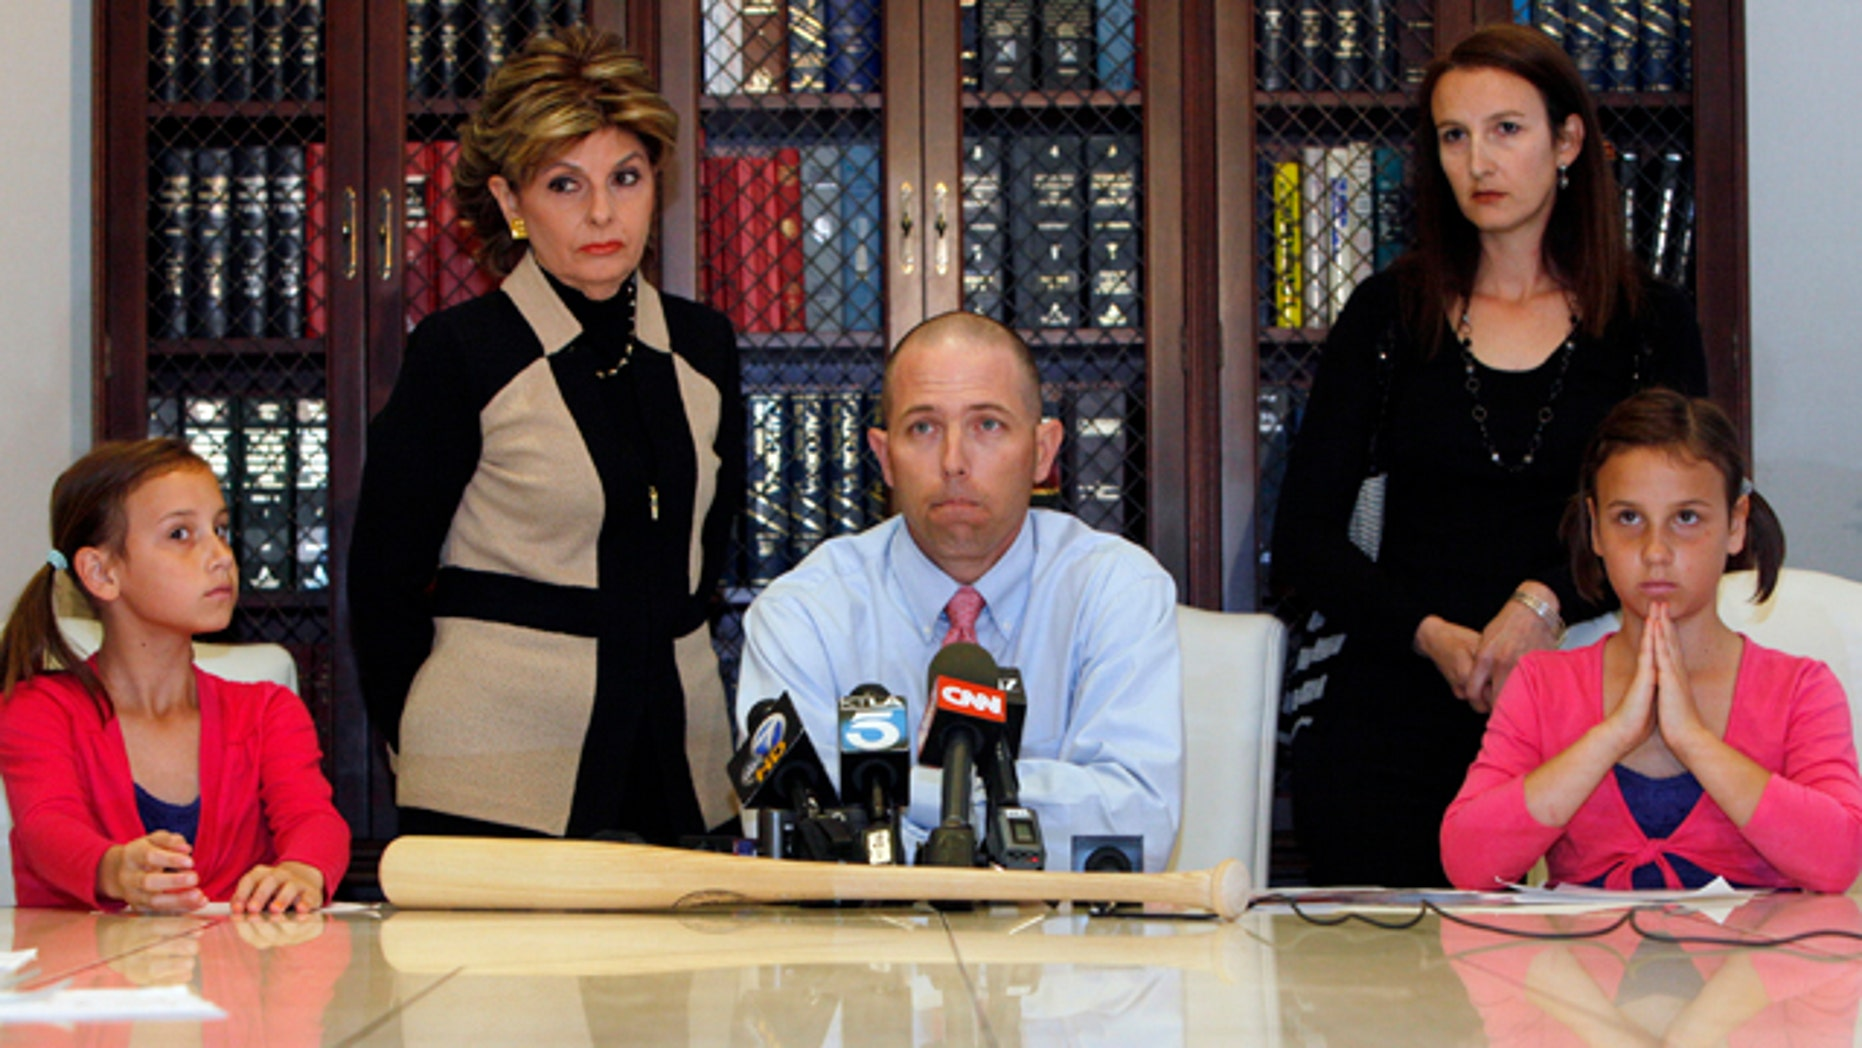 April 27: Justin Quinn, center, with his wife Jessica, right, and their twin daughters: Kylynn, far left, and Taylor, far right, take questions during a news conference organized by Los Angeles attorney Gloria Allred, standing left, in Los Angeles.